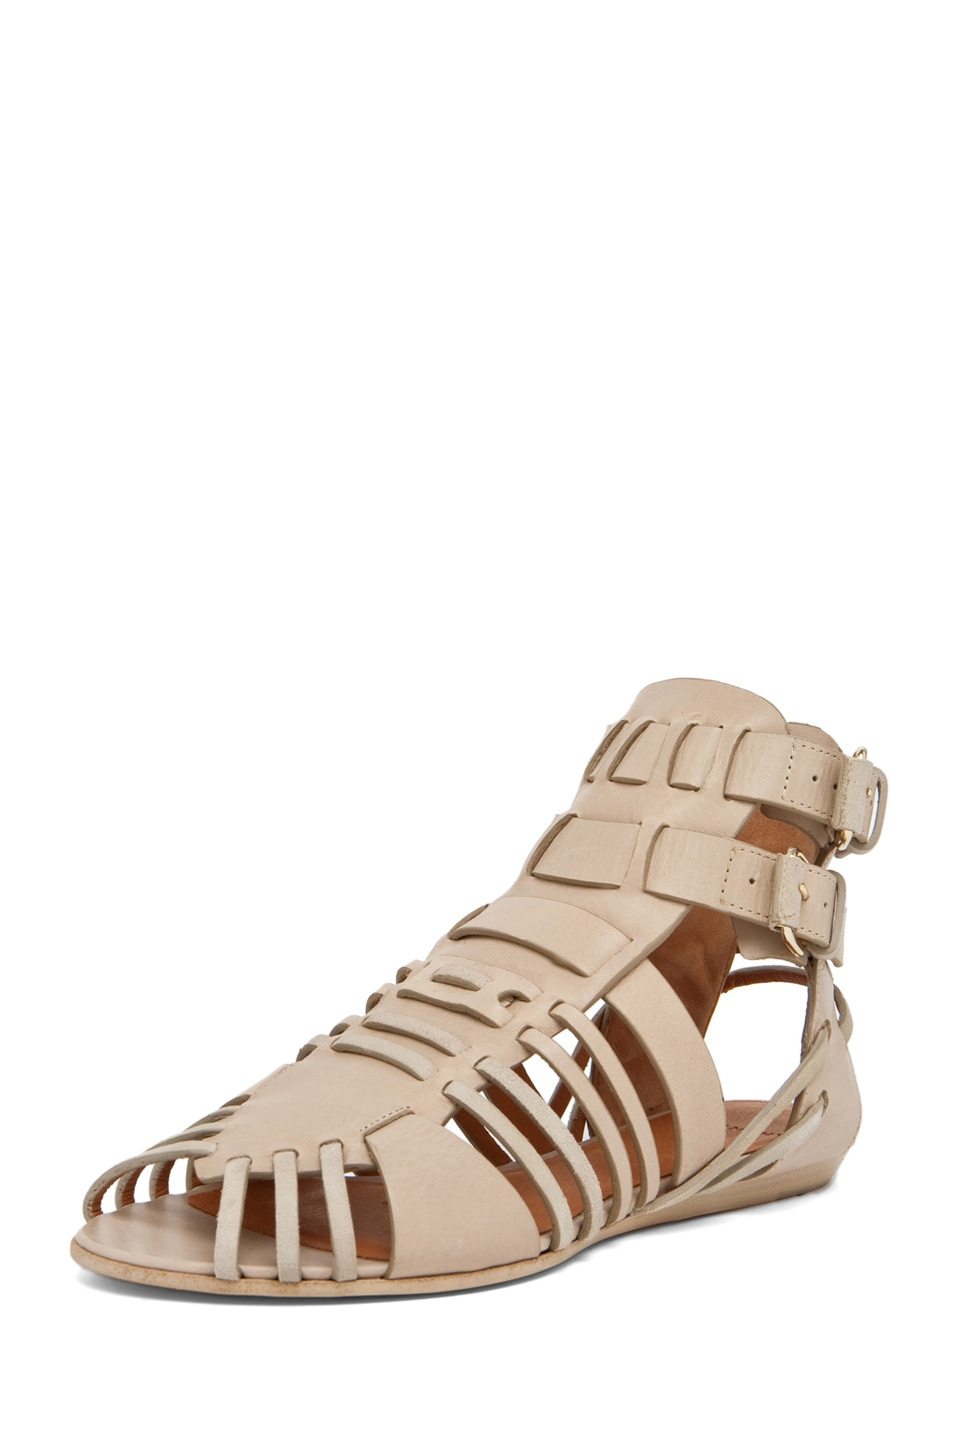 Image 2 of GIVENCHY Gladiator Sandal in Sand